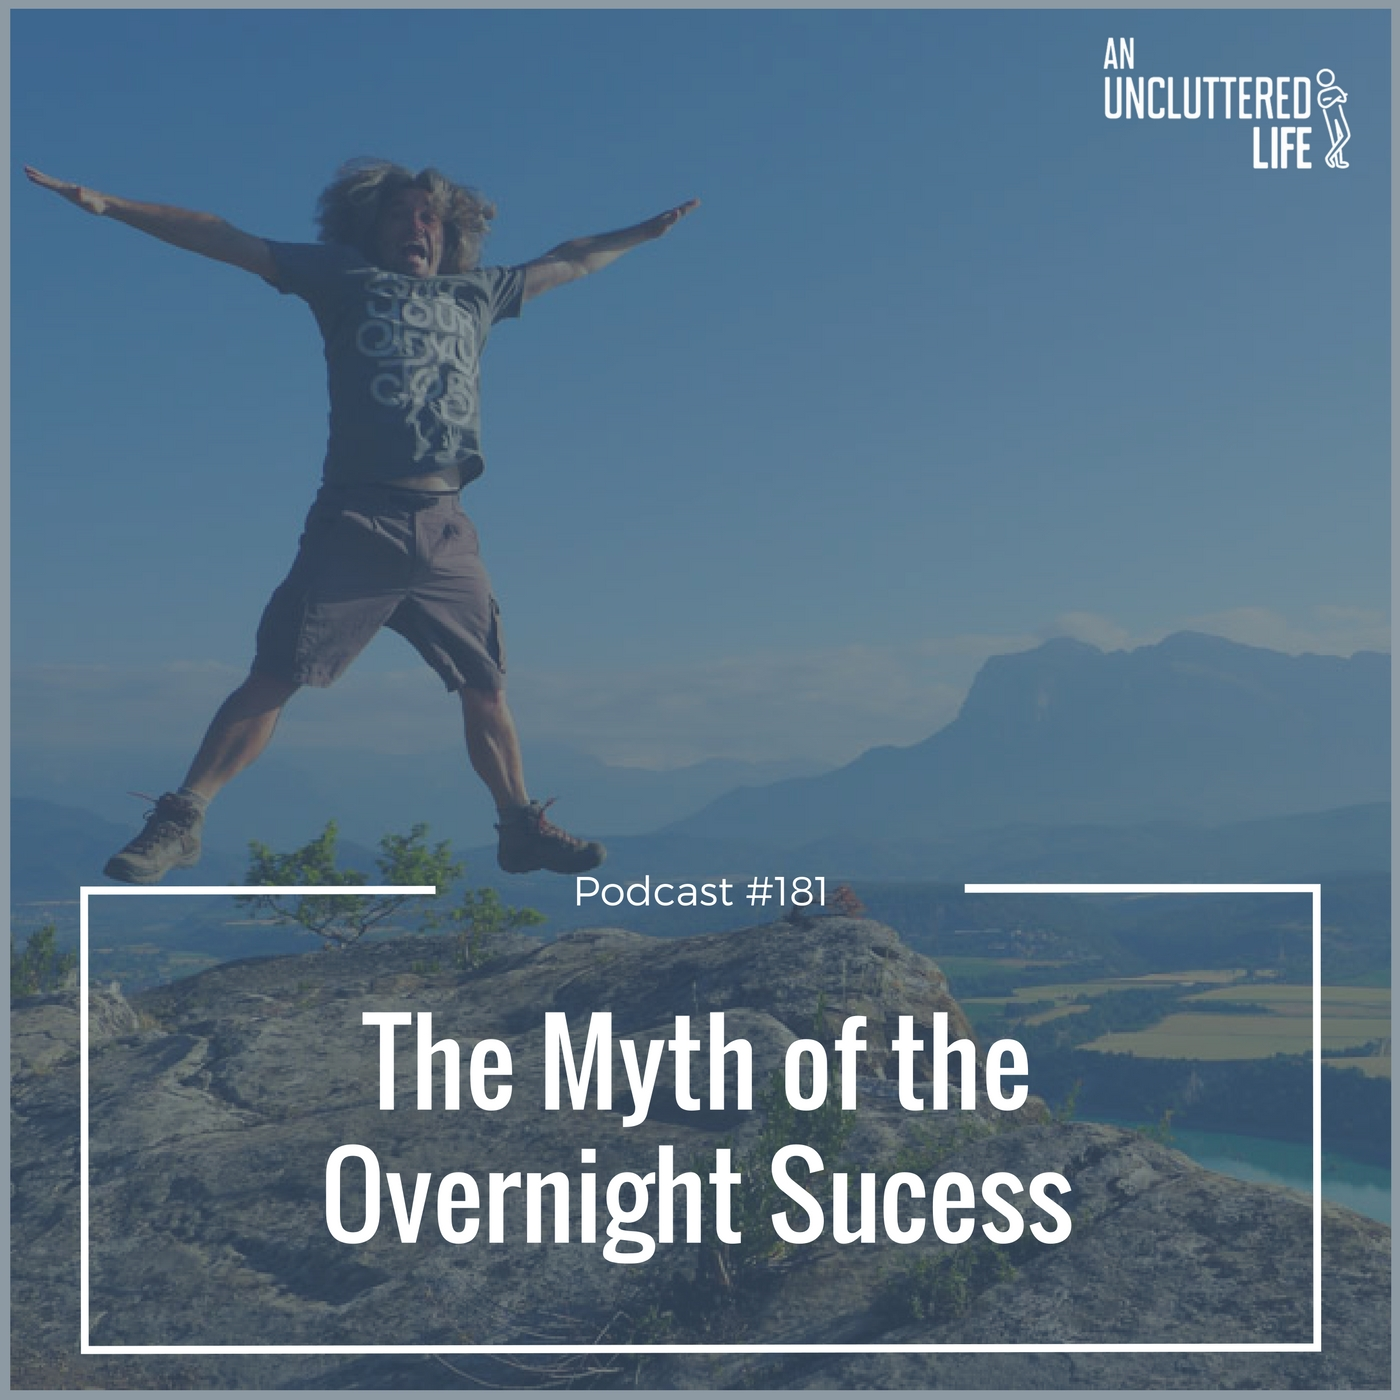 AUL #181 - The myth of an overnight success